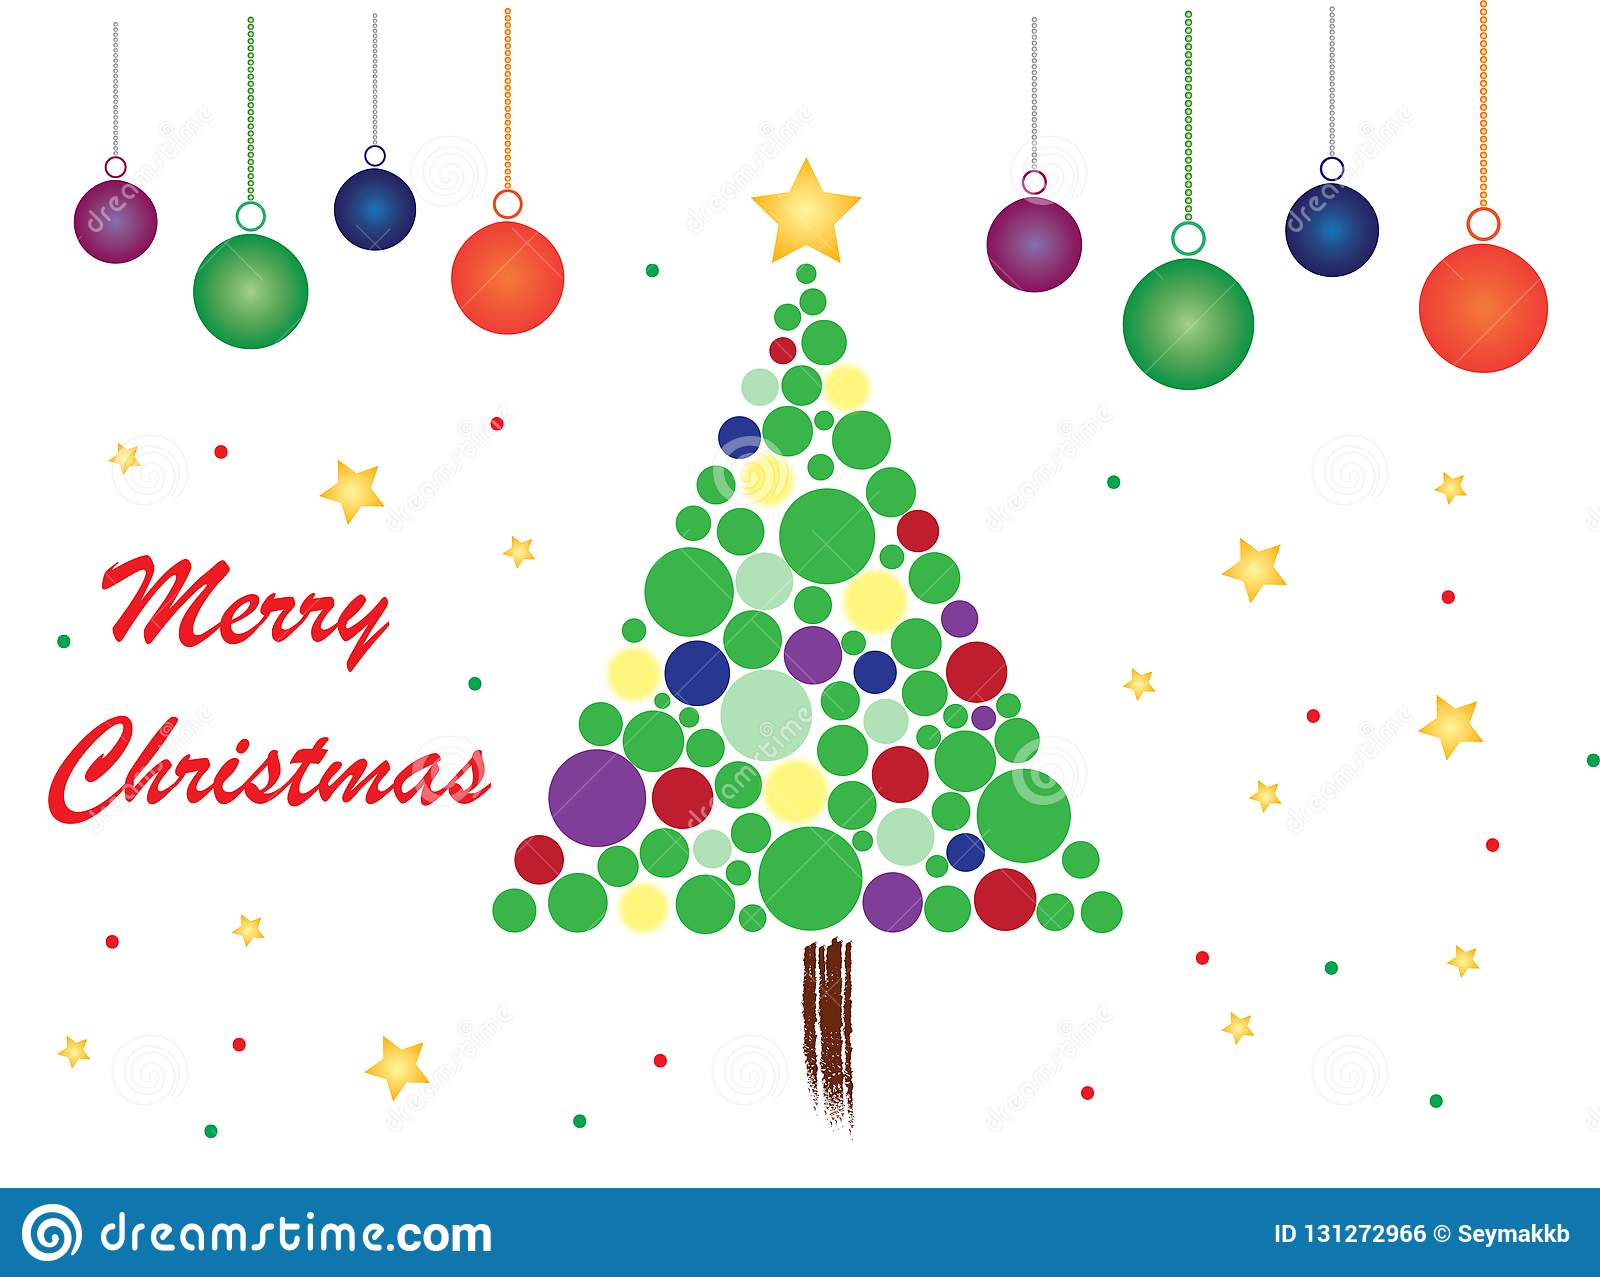 Merry Christmas Theme With White Background and Balls